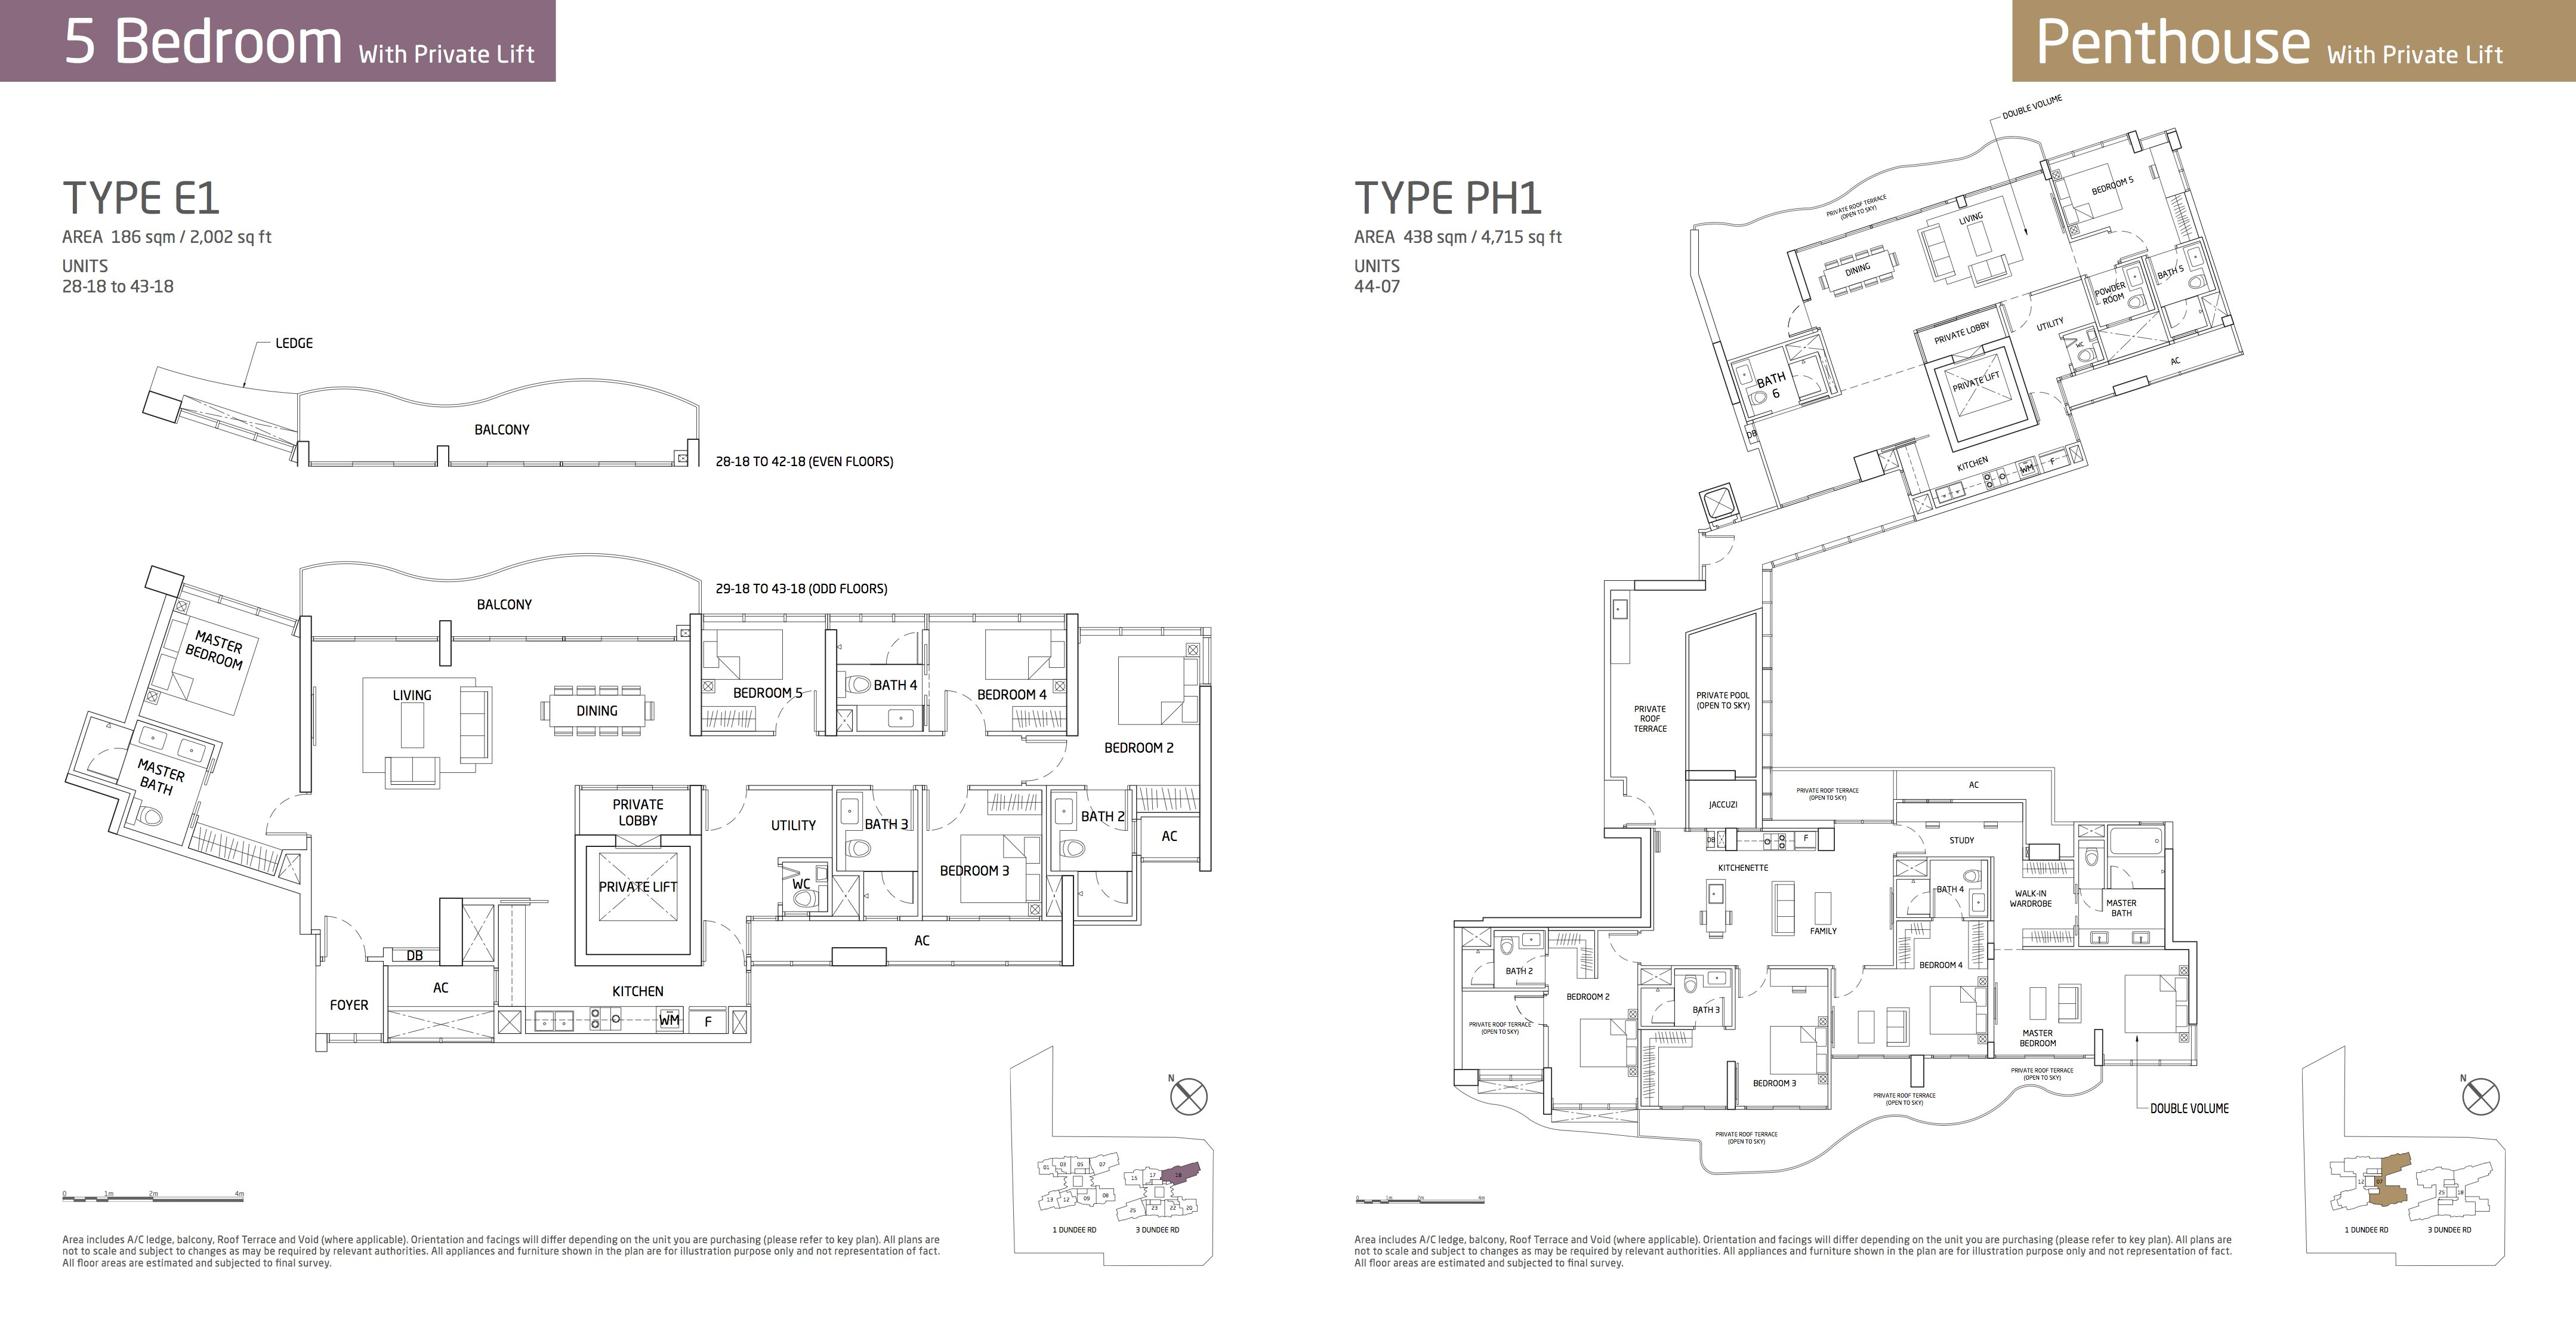 Queens Peak skye collections 5 bedroom E1 and penthouse